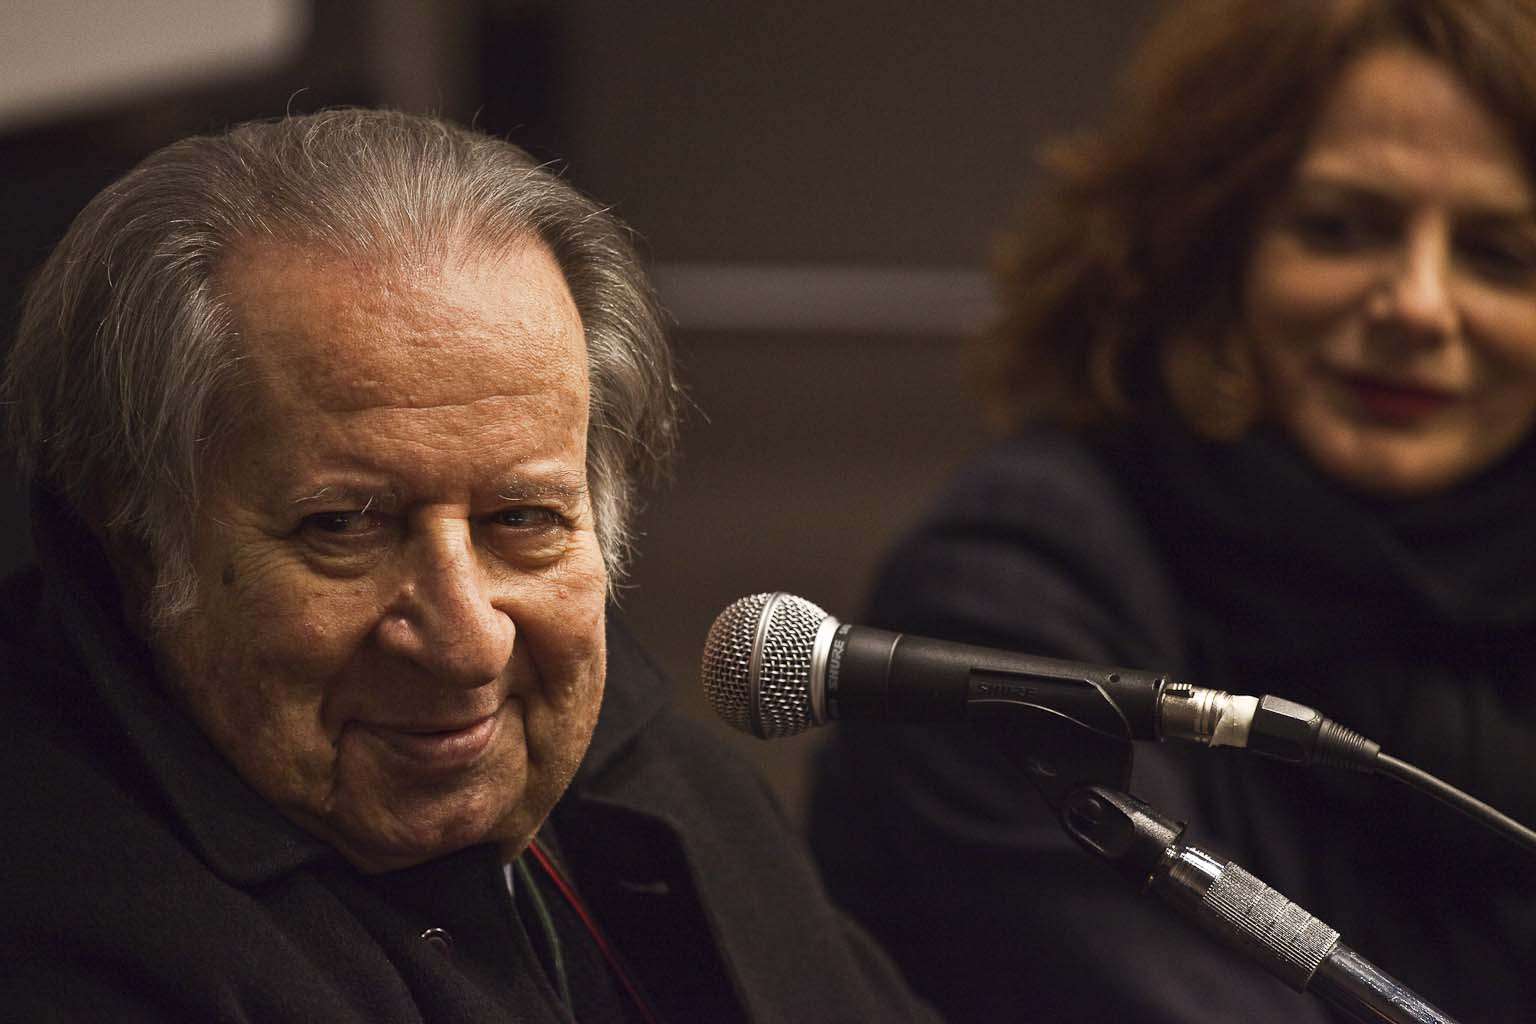 Tinto Brass al cinema Trevi